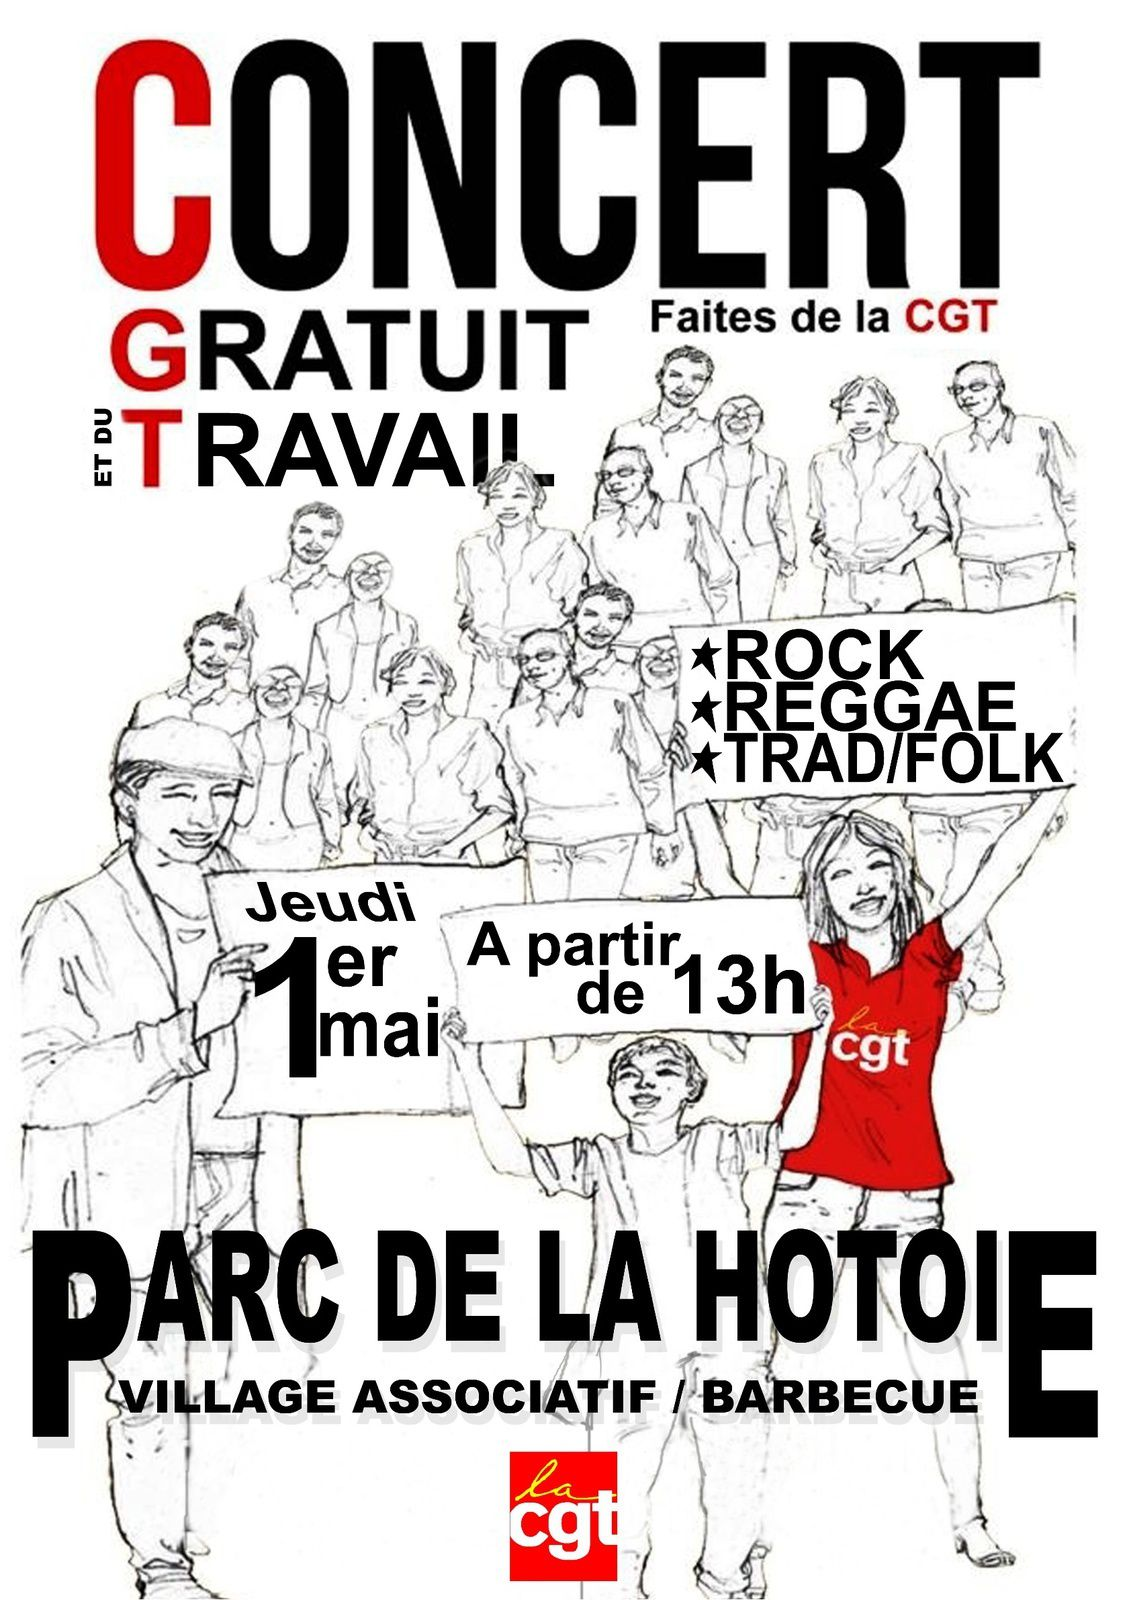 1 Mai, Journée Internationale du Travail à Amiens. Concerts, Manif, village associatif, repas